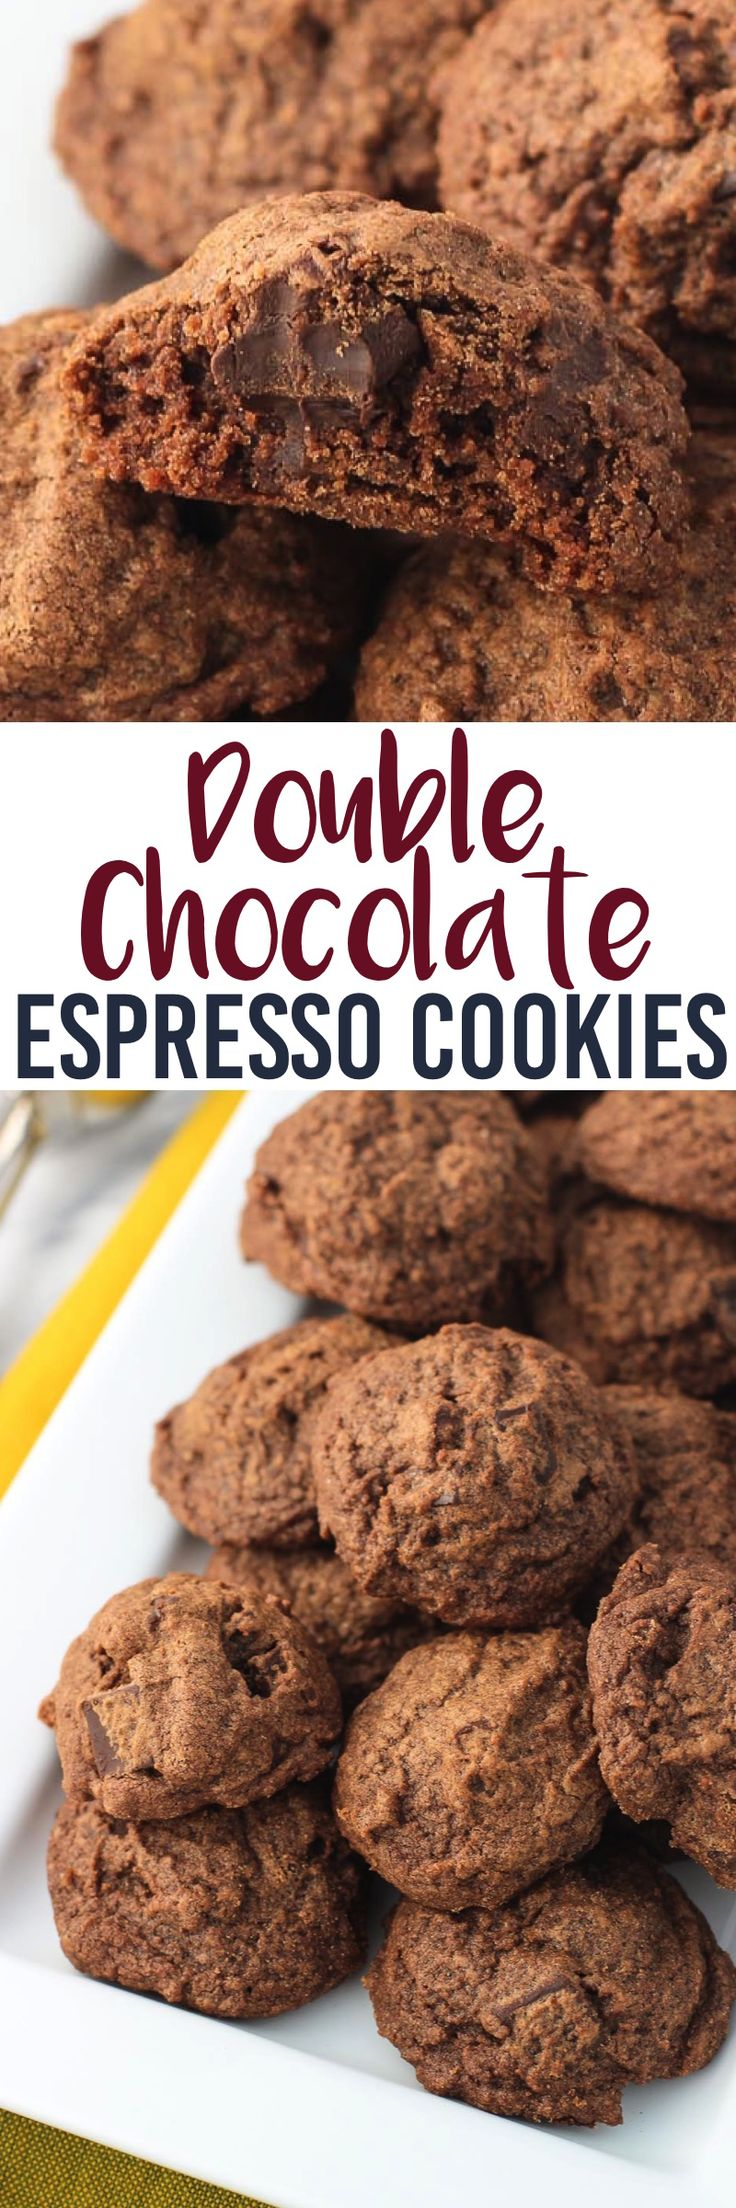 Double chocolate espresso cookies are simple to make and feature a deep chocolate flavor that's brought out even more by espresso powder. Chocolate chunks round out these soft, hearty cookies.